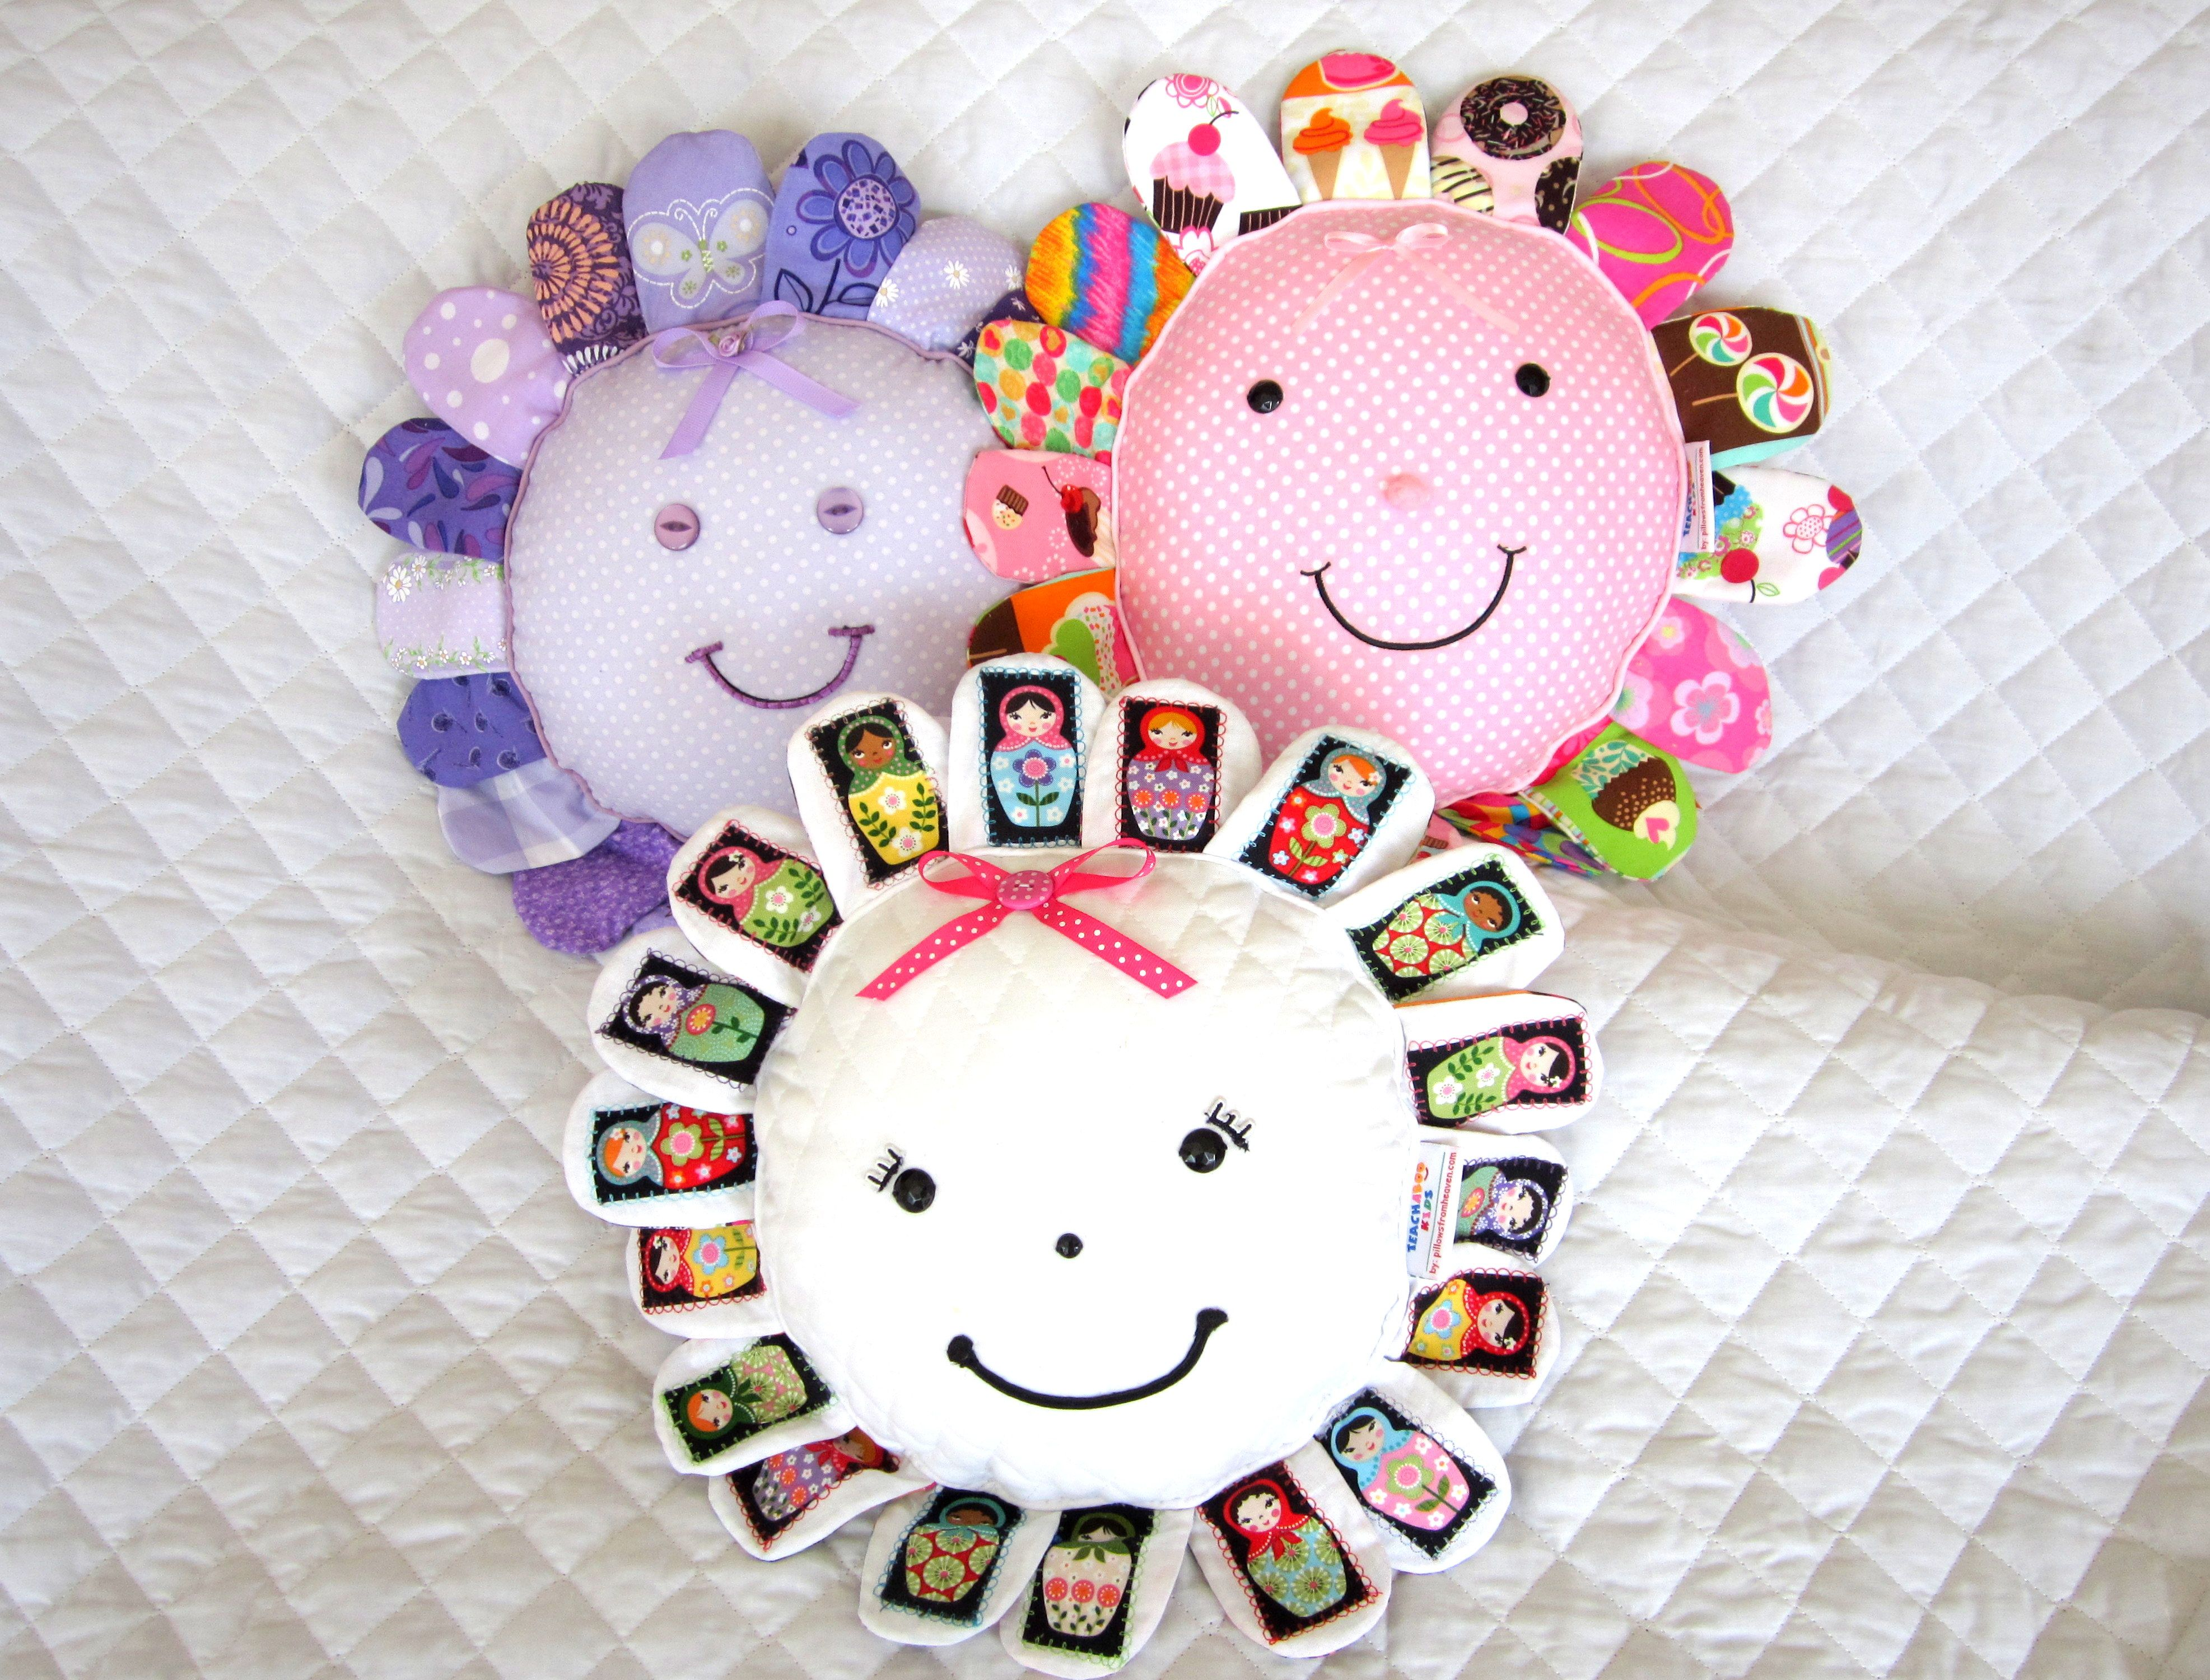 Happy Flappy pillows for girls --  Hang them on a wall or toss them on the bed. Their smiling faces are sure to brighten your little girl's room.